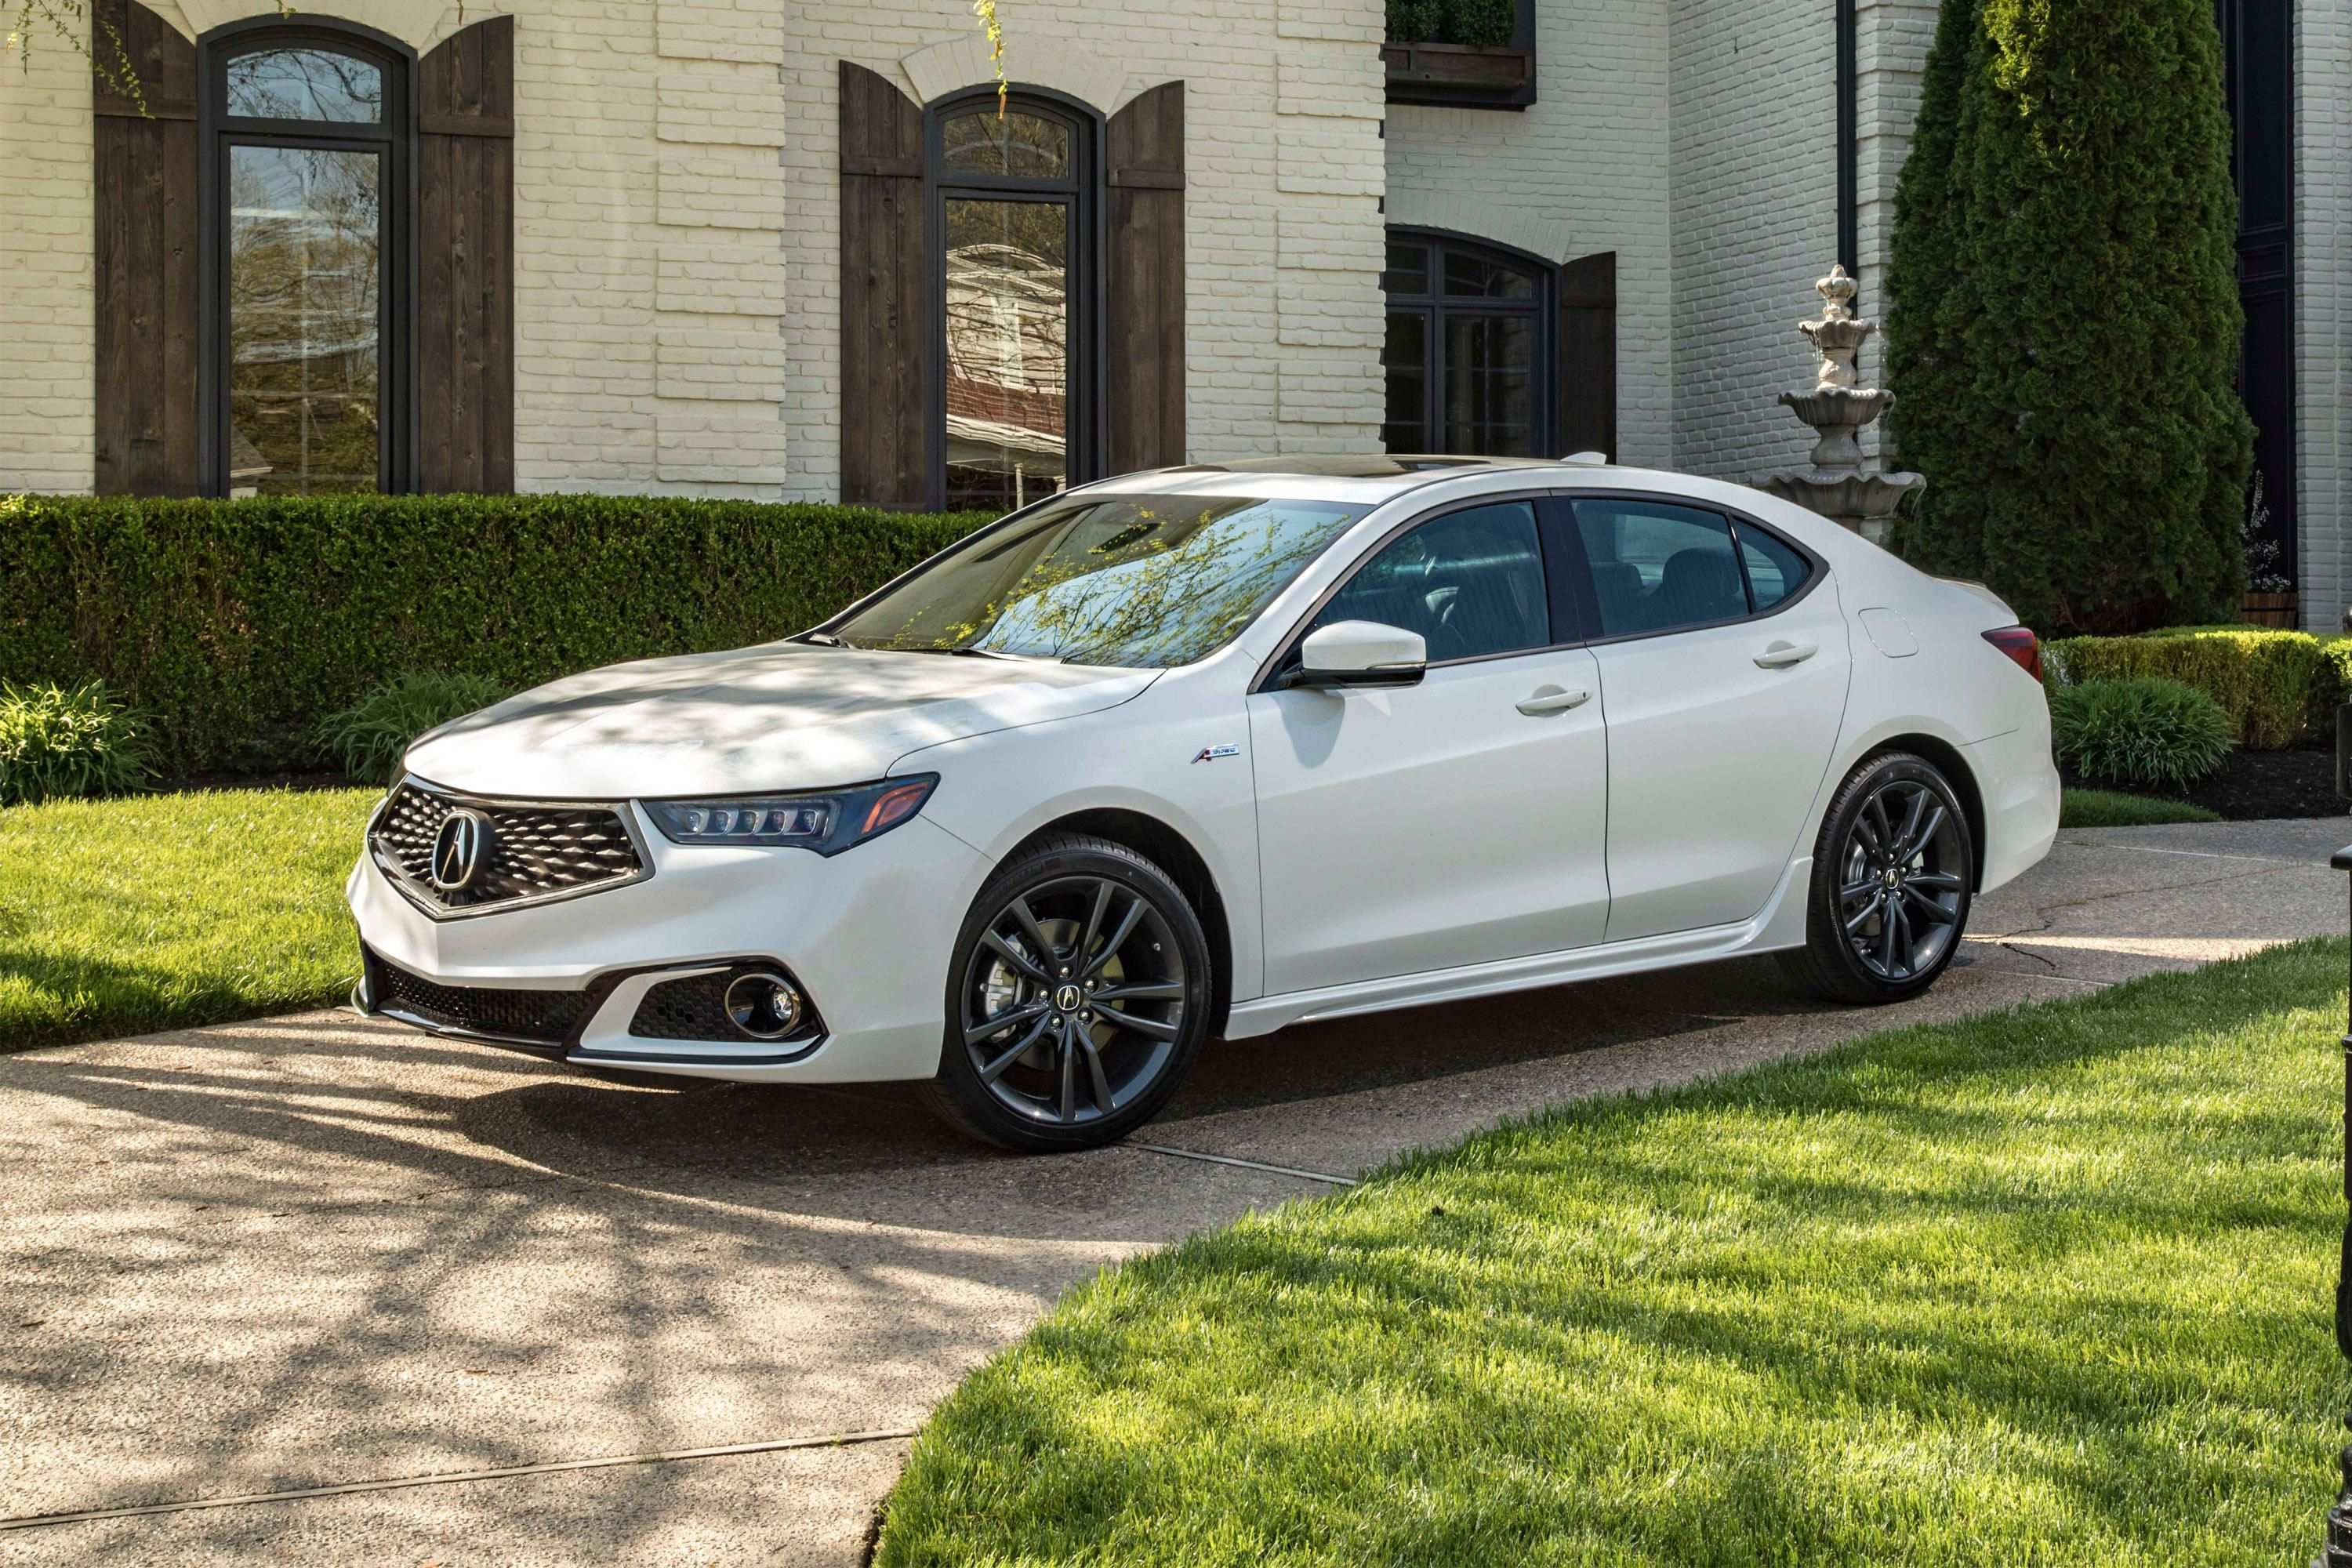 43 Great 2019 Acura Tl Exterior and Interior by 2019 Acura Tl